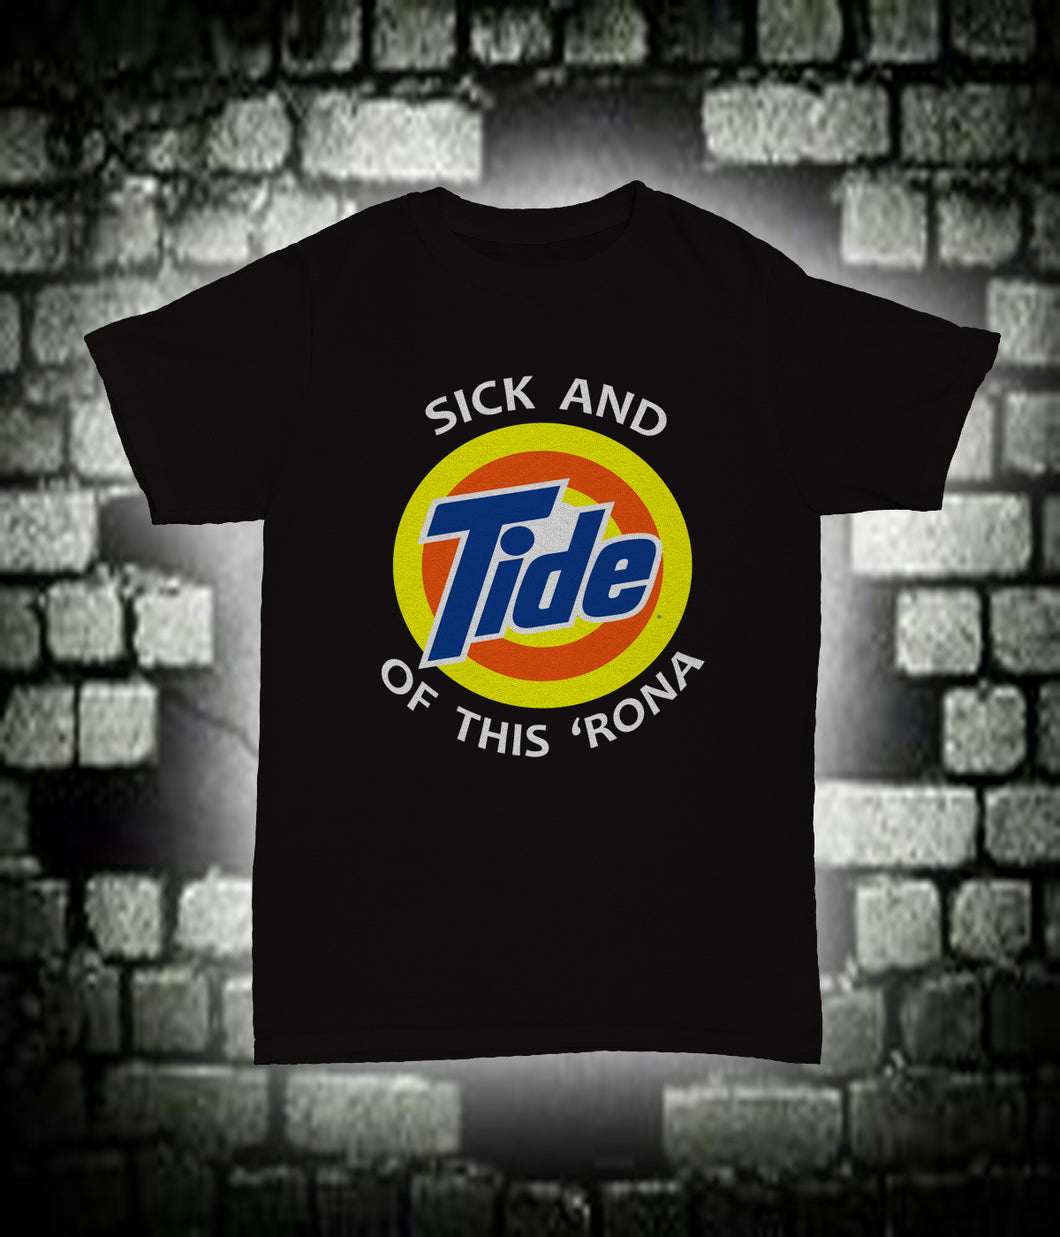 Sick And Tide